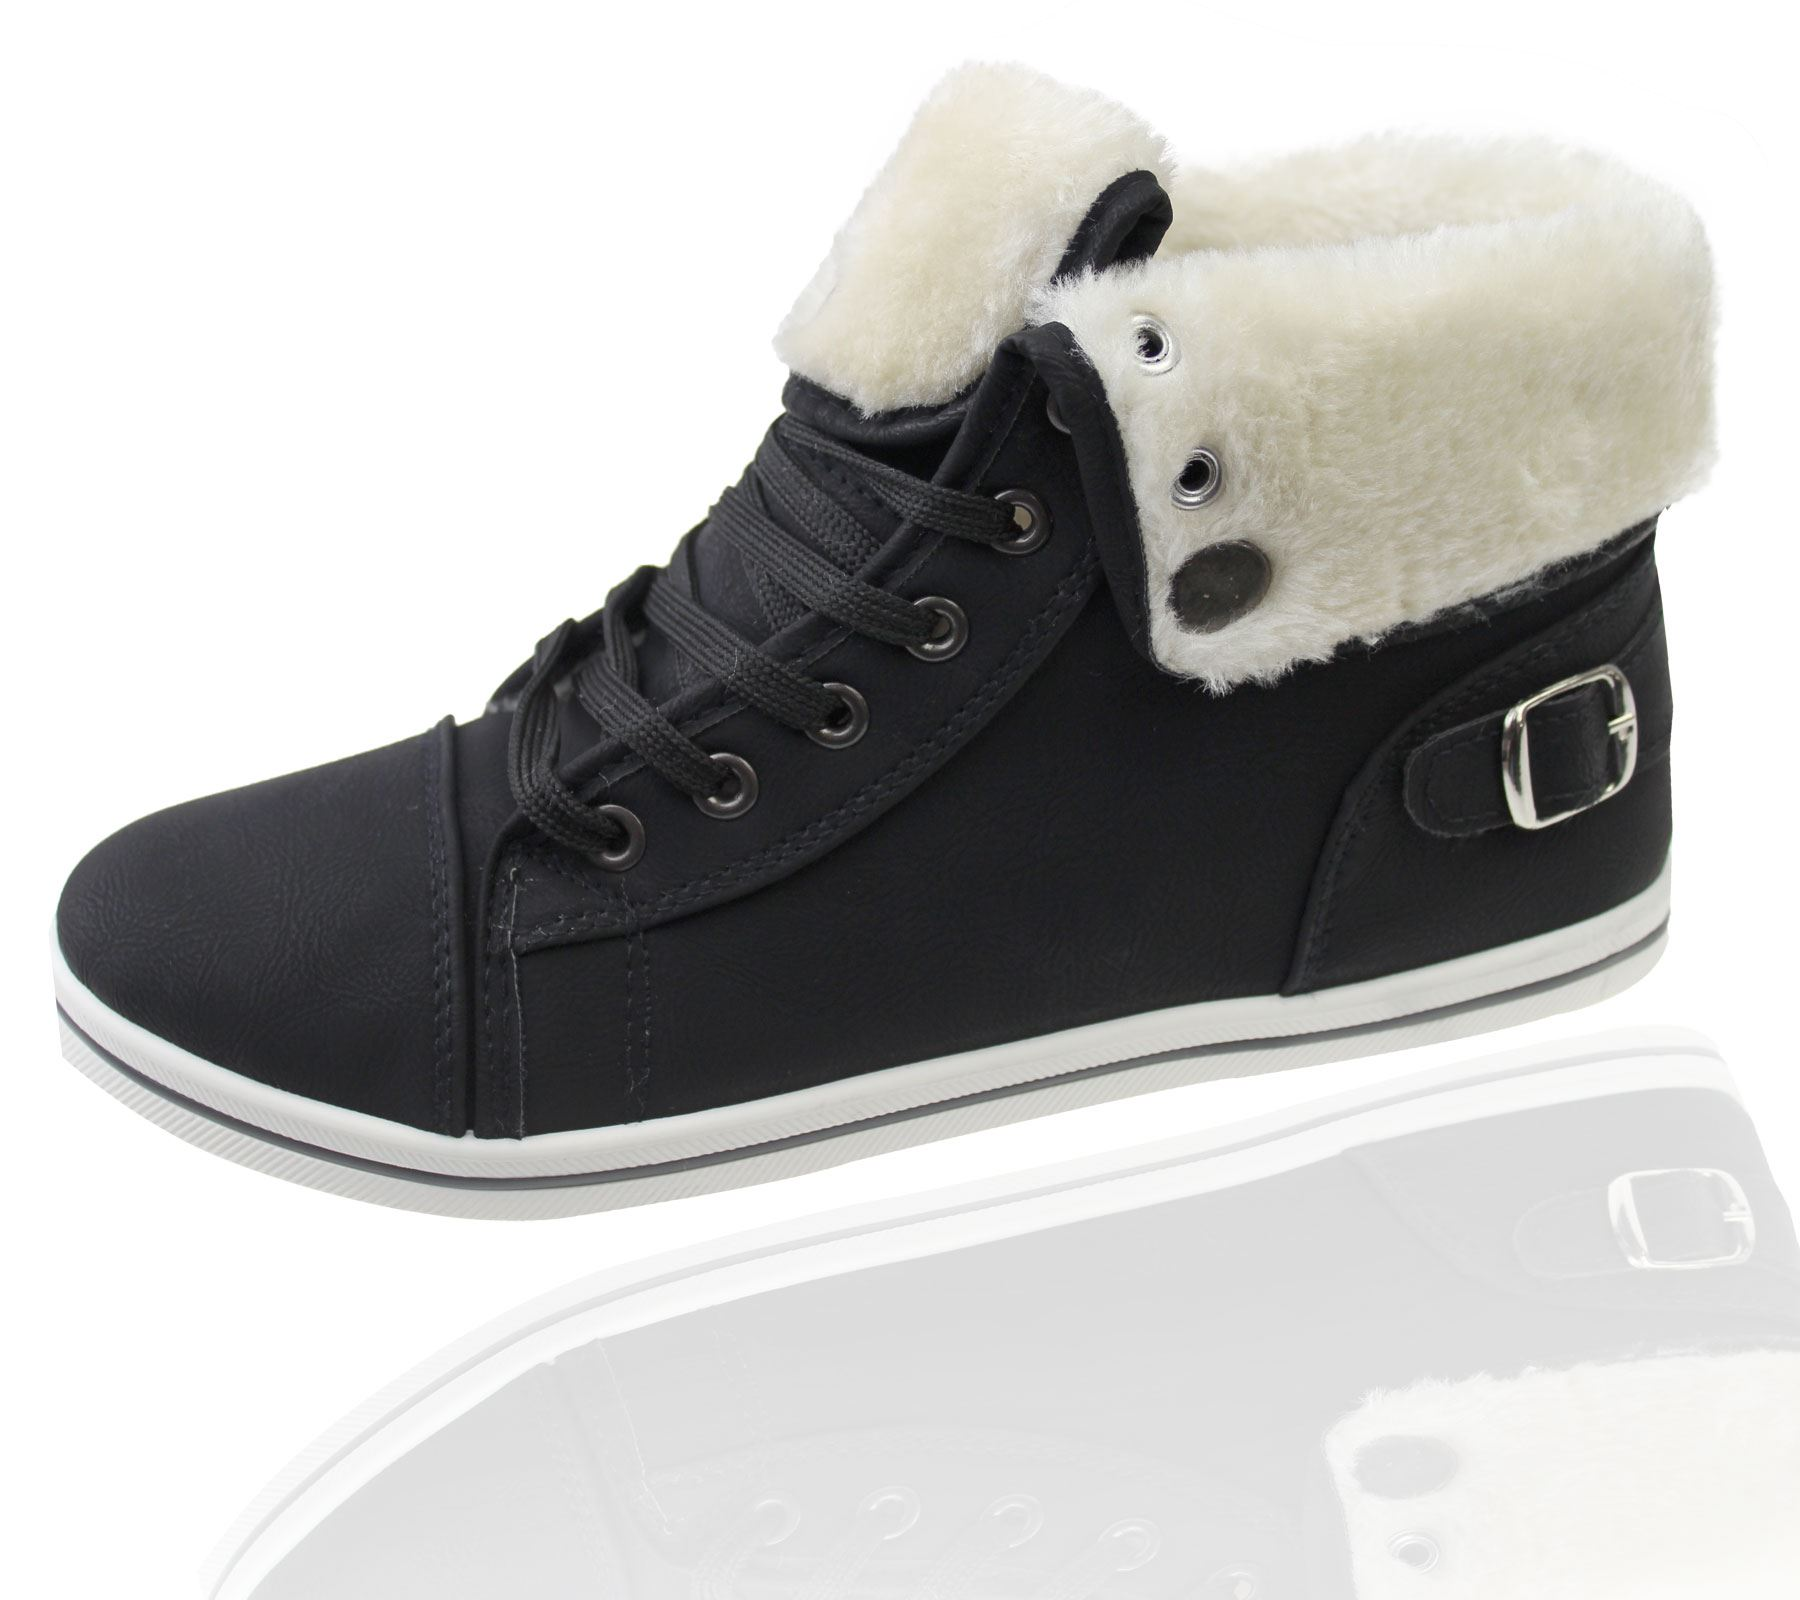 Girls-Boots-Womens-Warm-Lined-High-Top-Ankle-Trainer-Ladies-Winter-Shoes-Size miniatura 88